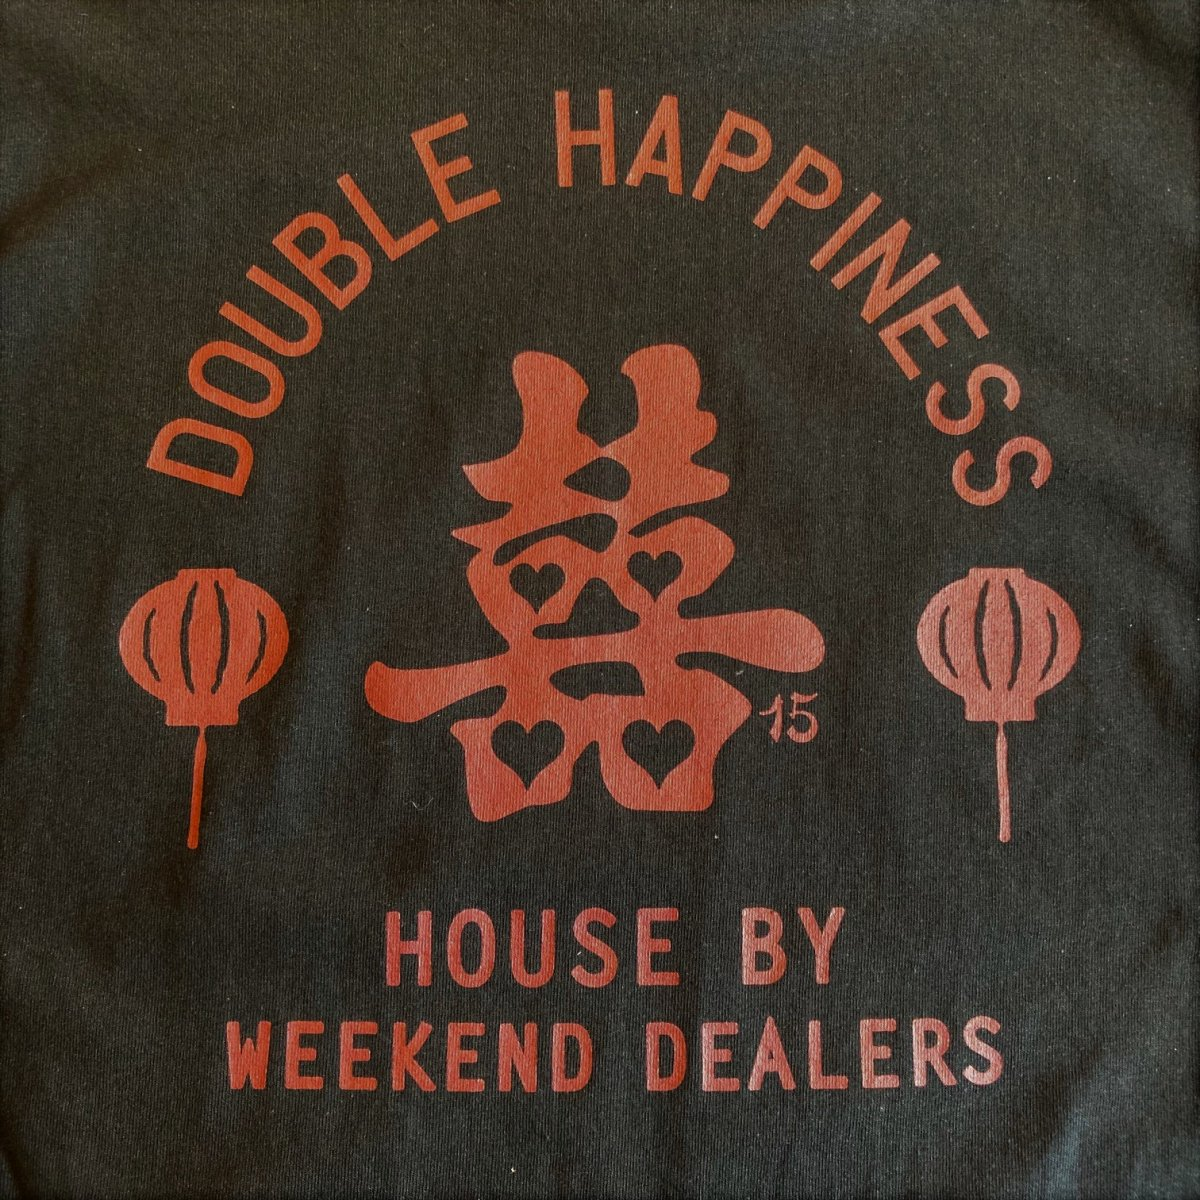 <img class='new_mark_img1' src='https://img.shop-pro.jp/img/new/icons3.gif' style='border:none;display:inline;margin:0px;padding:0px;width:auto;' />Black Weirdos × HOUSE by WEEKEND DEALERS 15th ANNIVERSARY LS Tee 【BLACK】